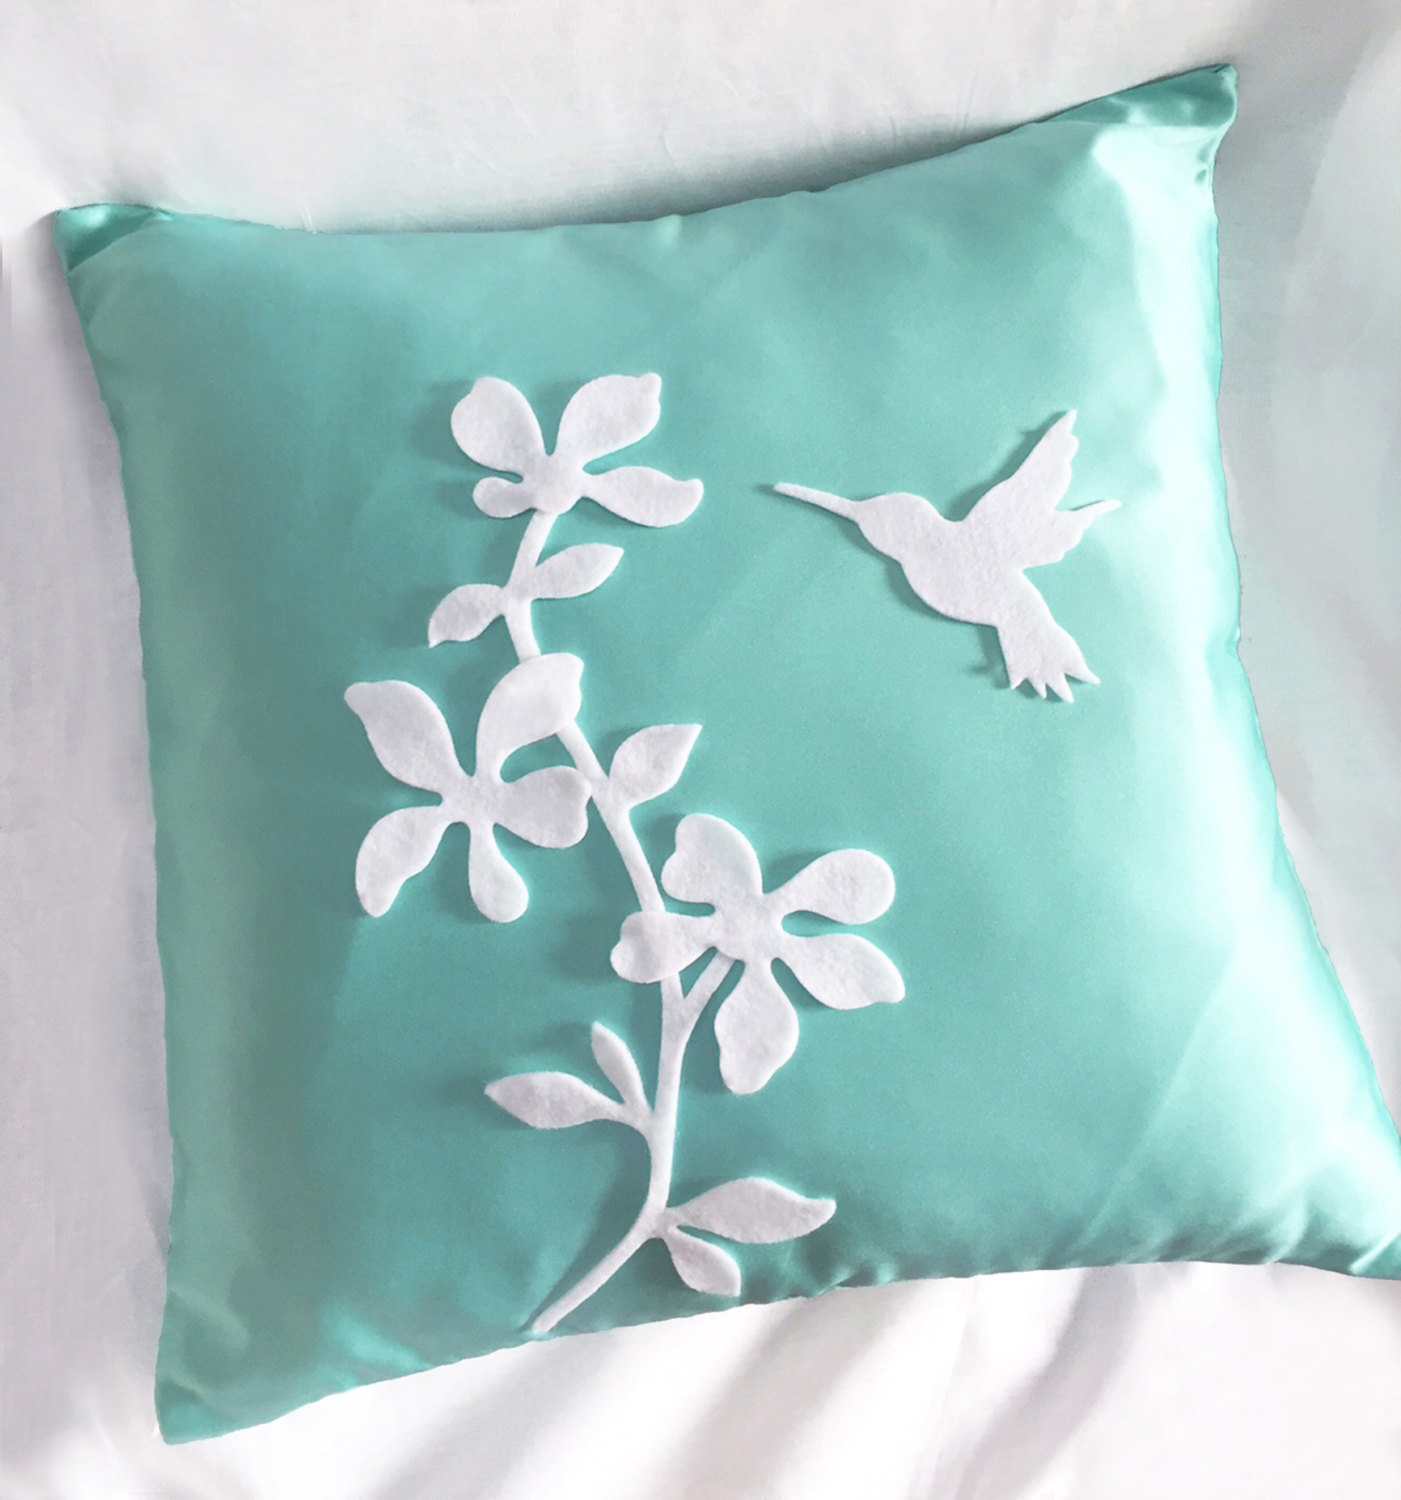 Spring Blossom Pretty Florals Mint And White Decorative Pillow Cover Cushion Cover